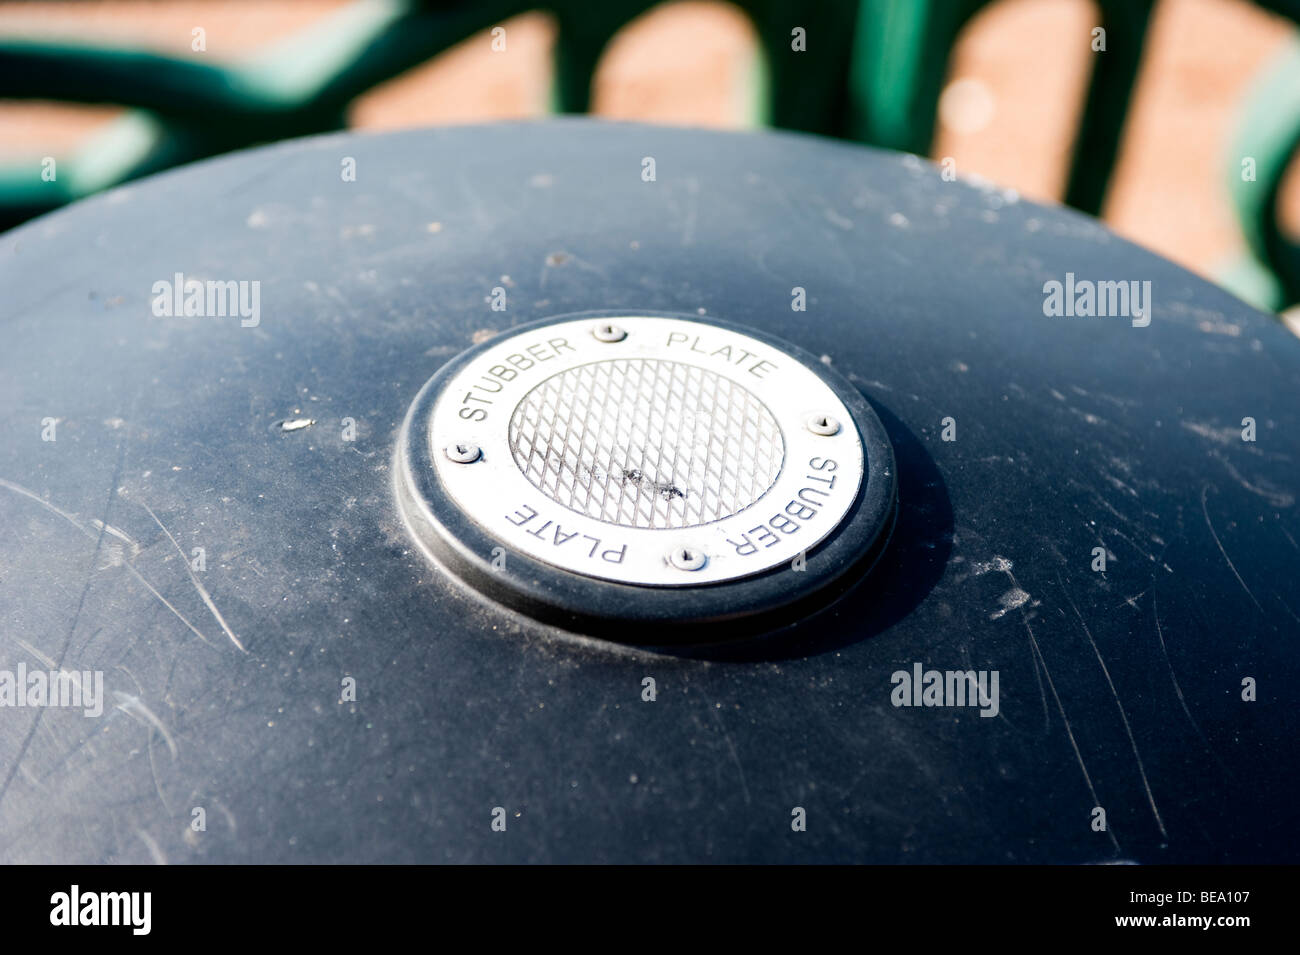 plate to stub out cigarettes on litter bin - Stock Image